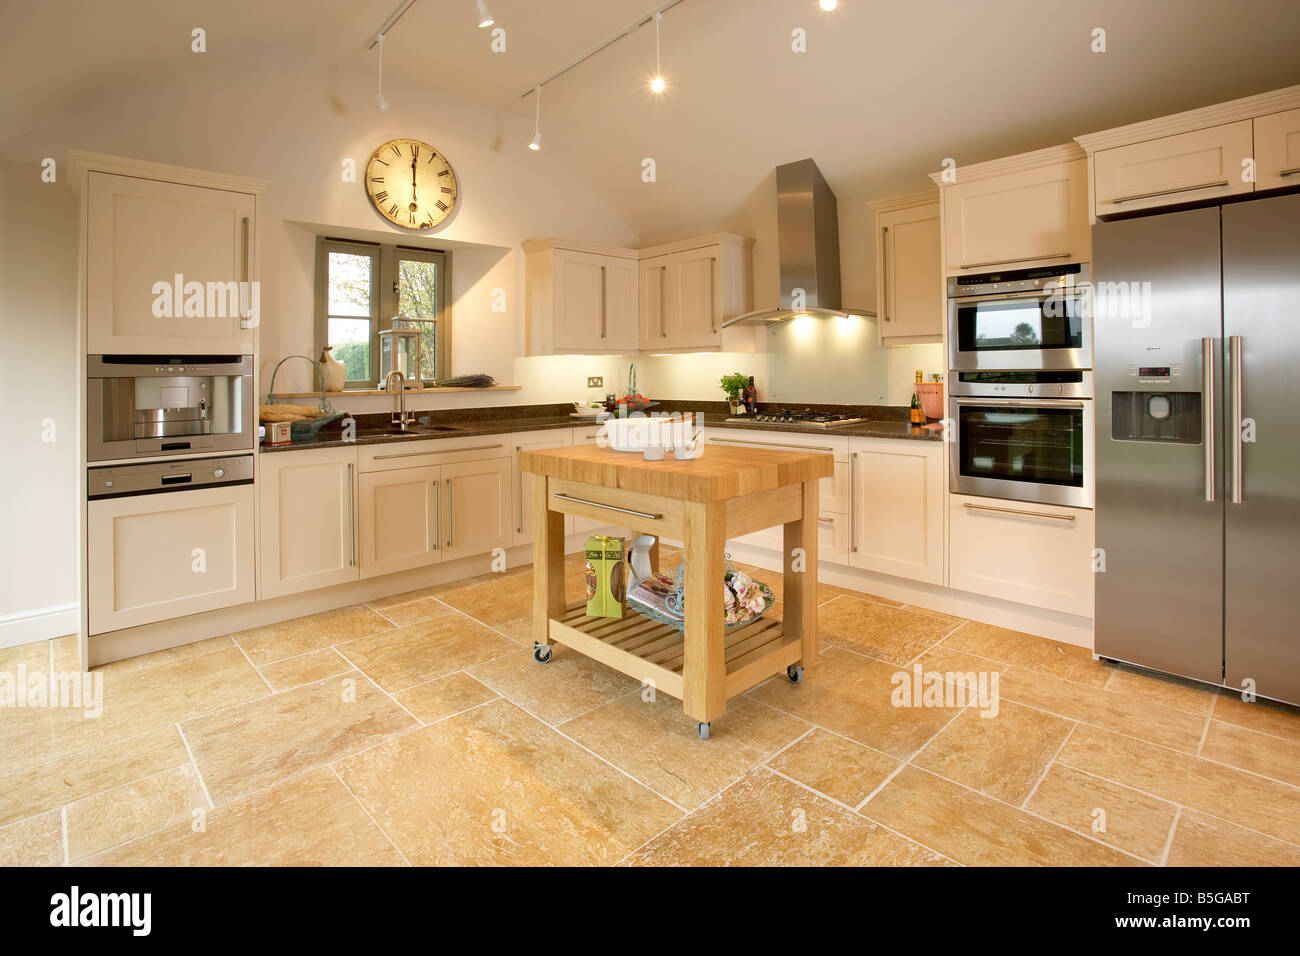 Modern Shaker Style Kitchen With Limestone Floor Butchers